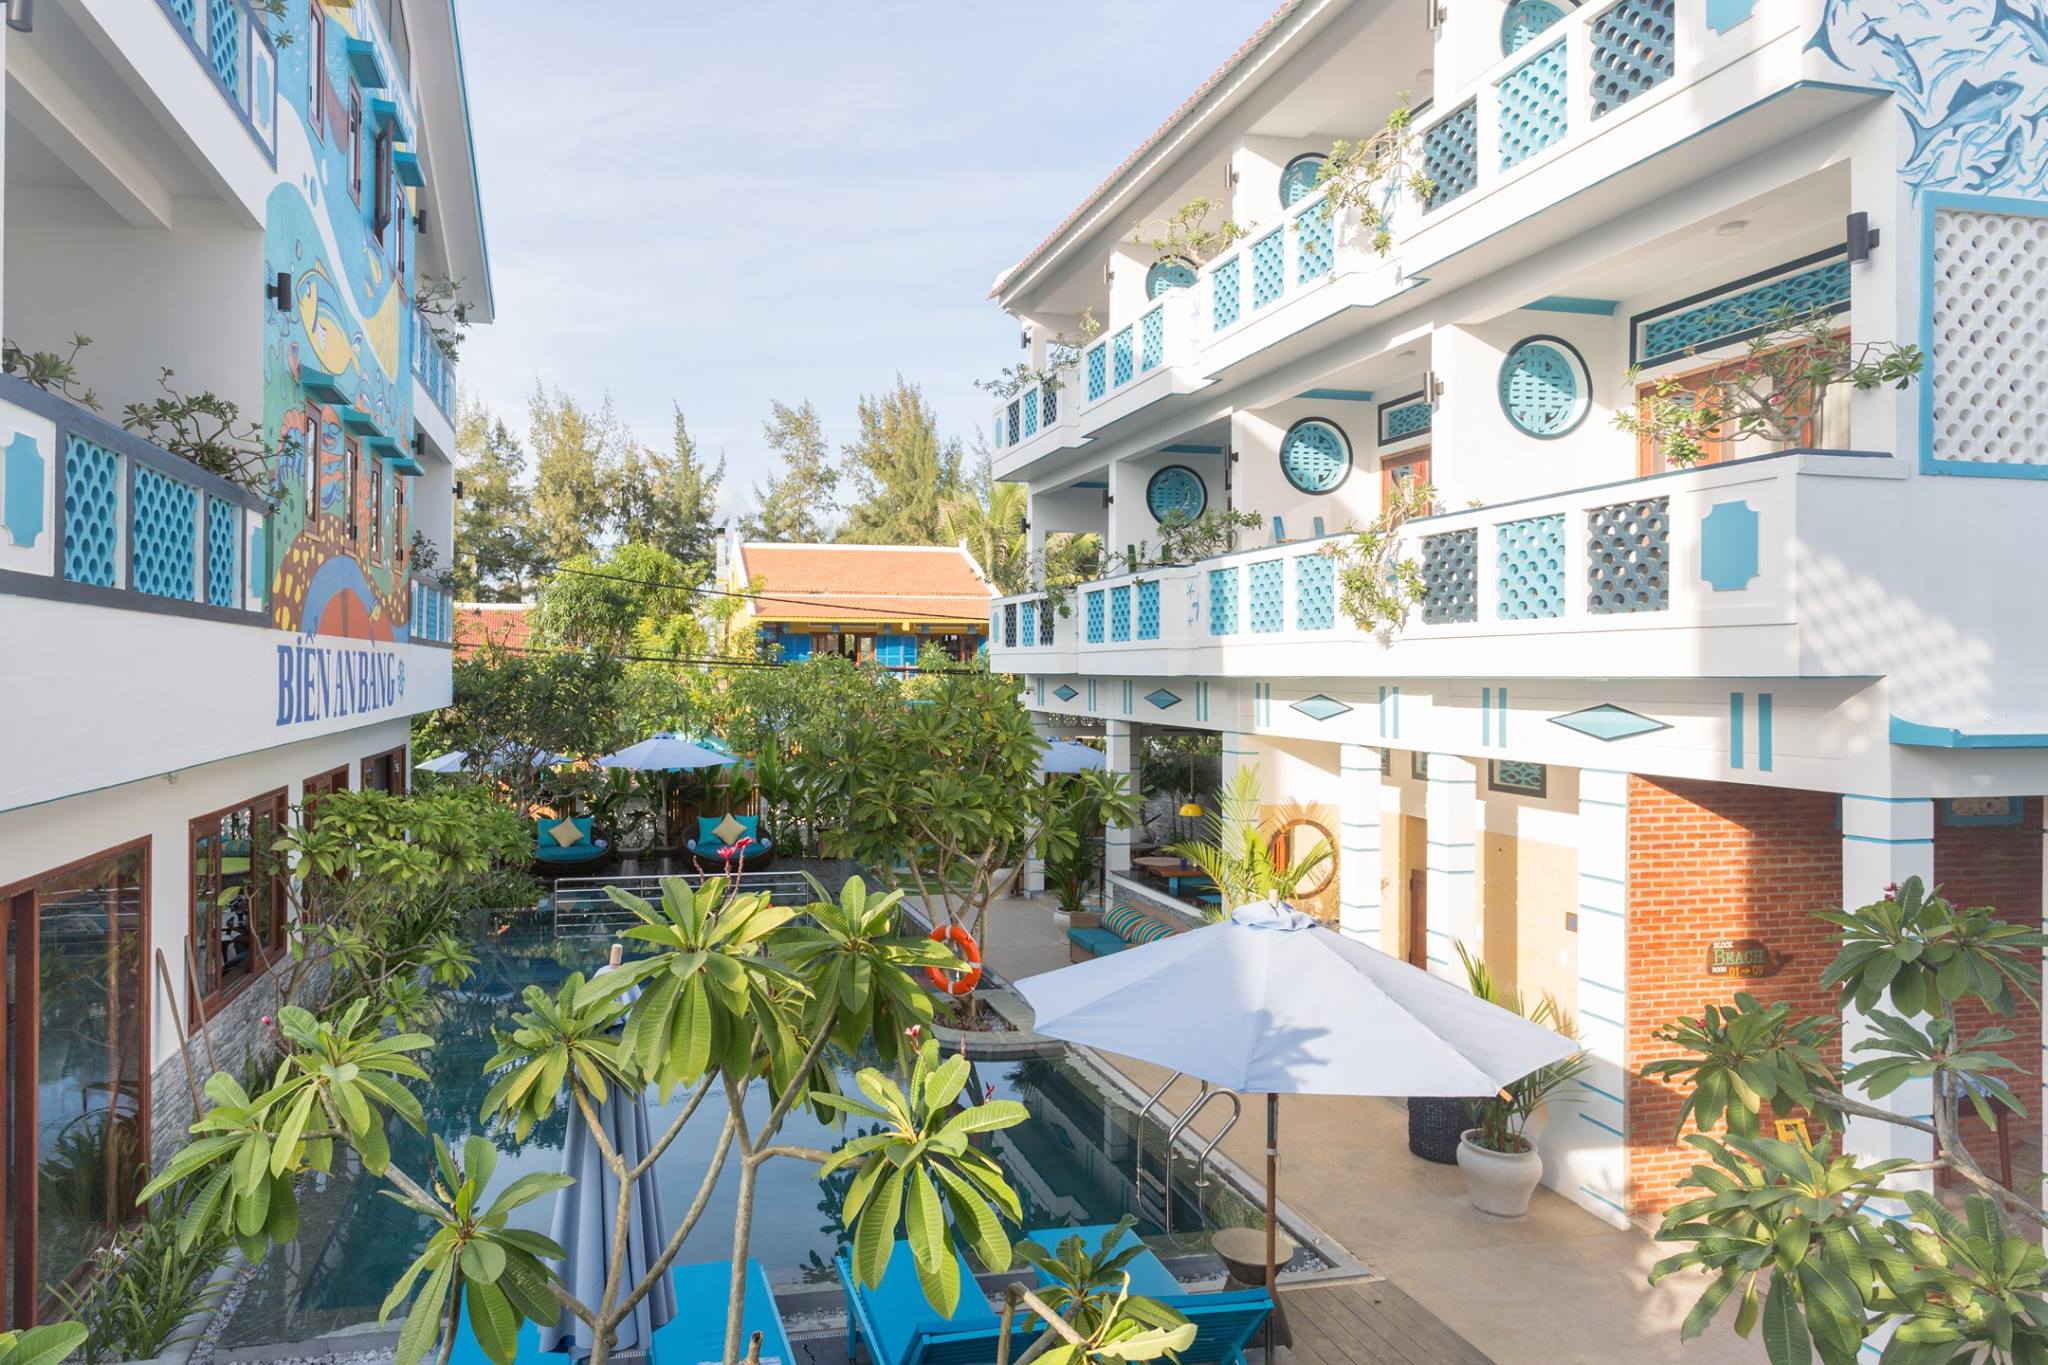 the Beachside Boutique Resort's beautiful blue and white theme